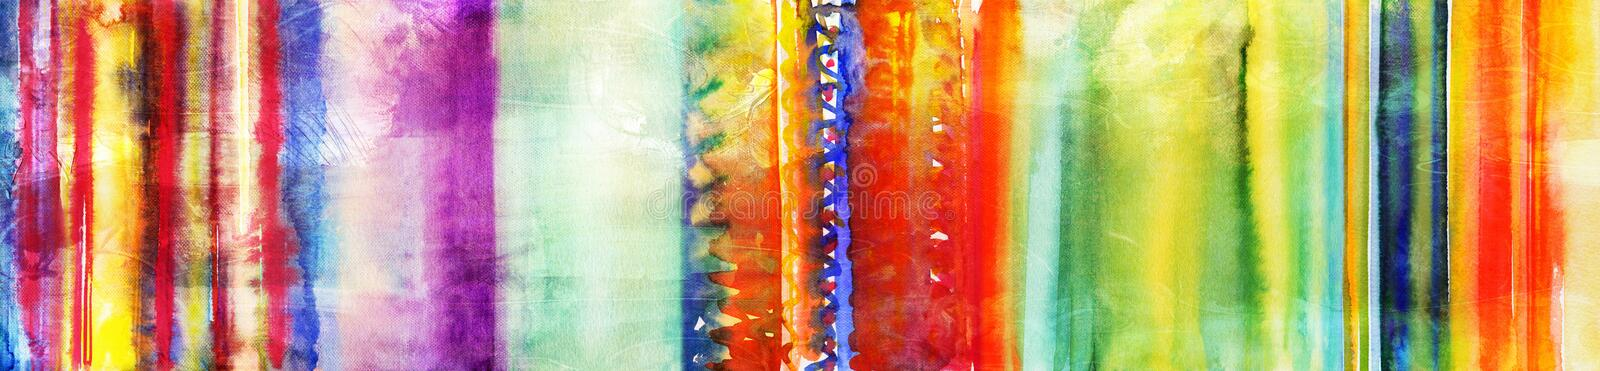 Colourful hand painted watercolor stripes banner. Hand painted watercolor stripes banner in various colourful tones and textures stock illustration